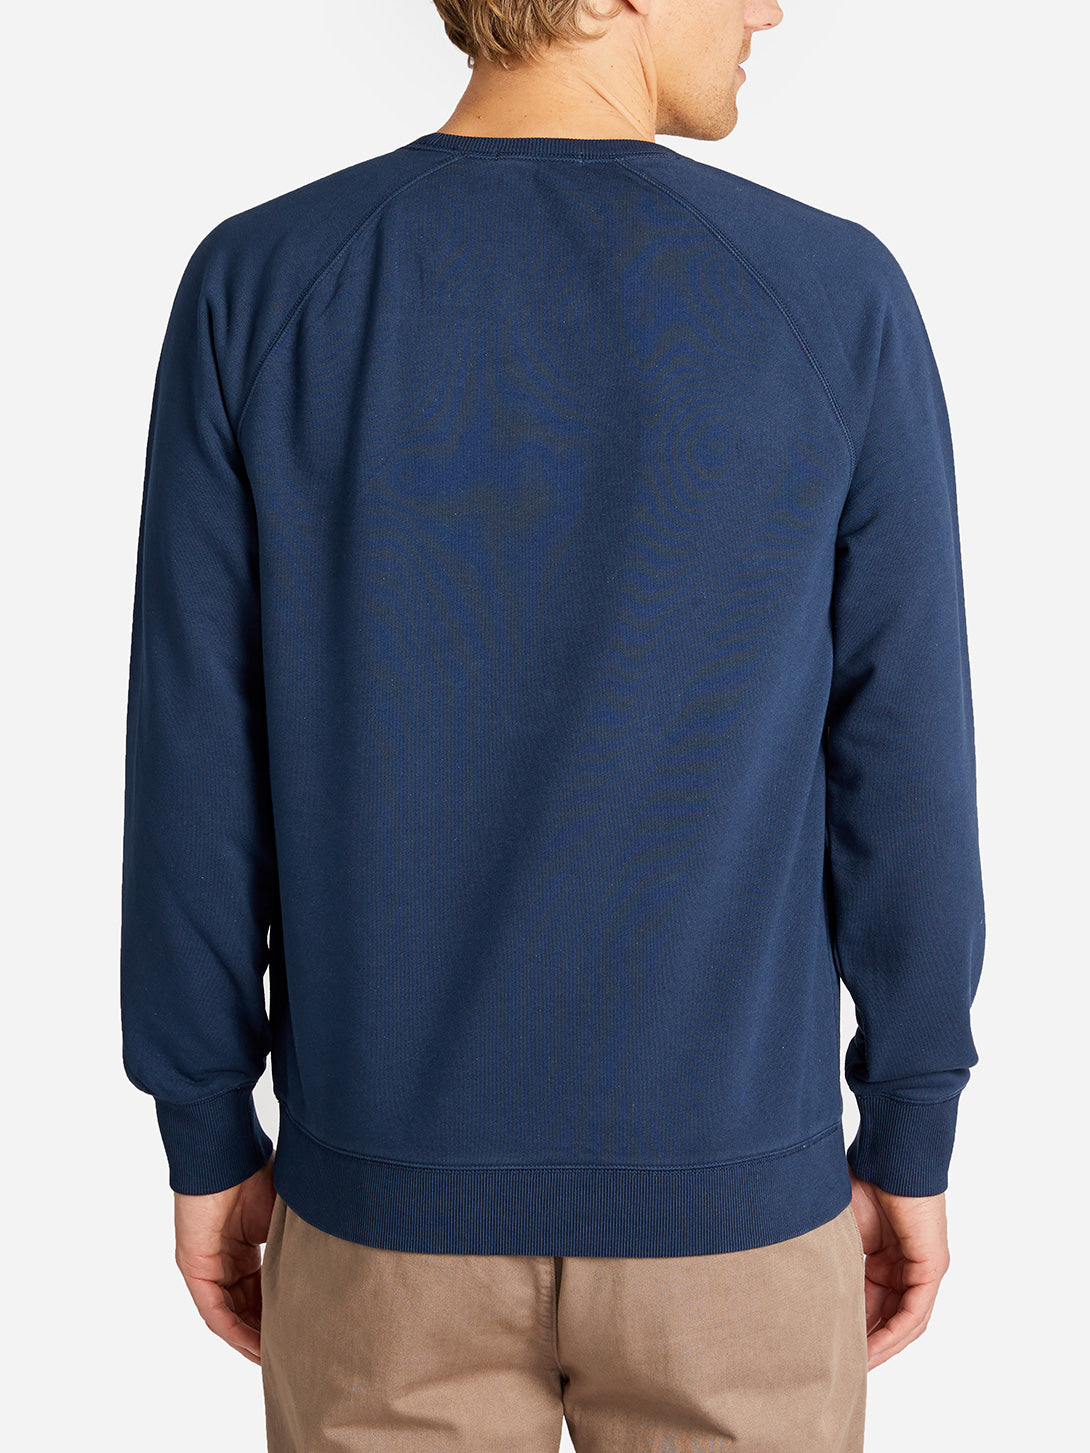 FRENCH TERRY SWEATSHIRT NAVY HERITAGE LINE